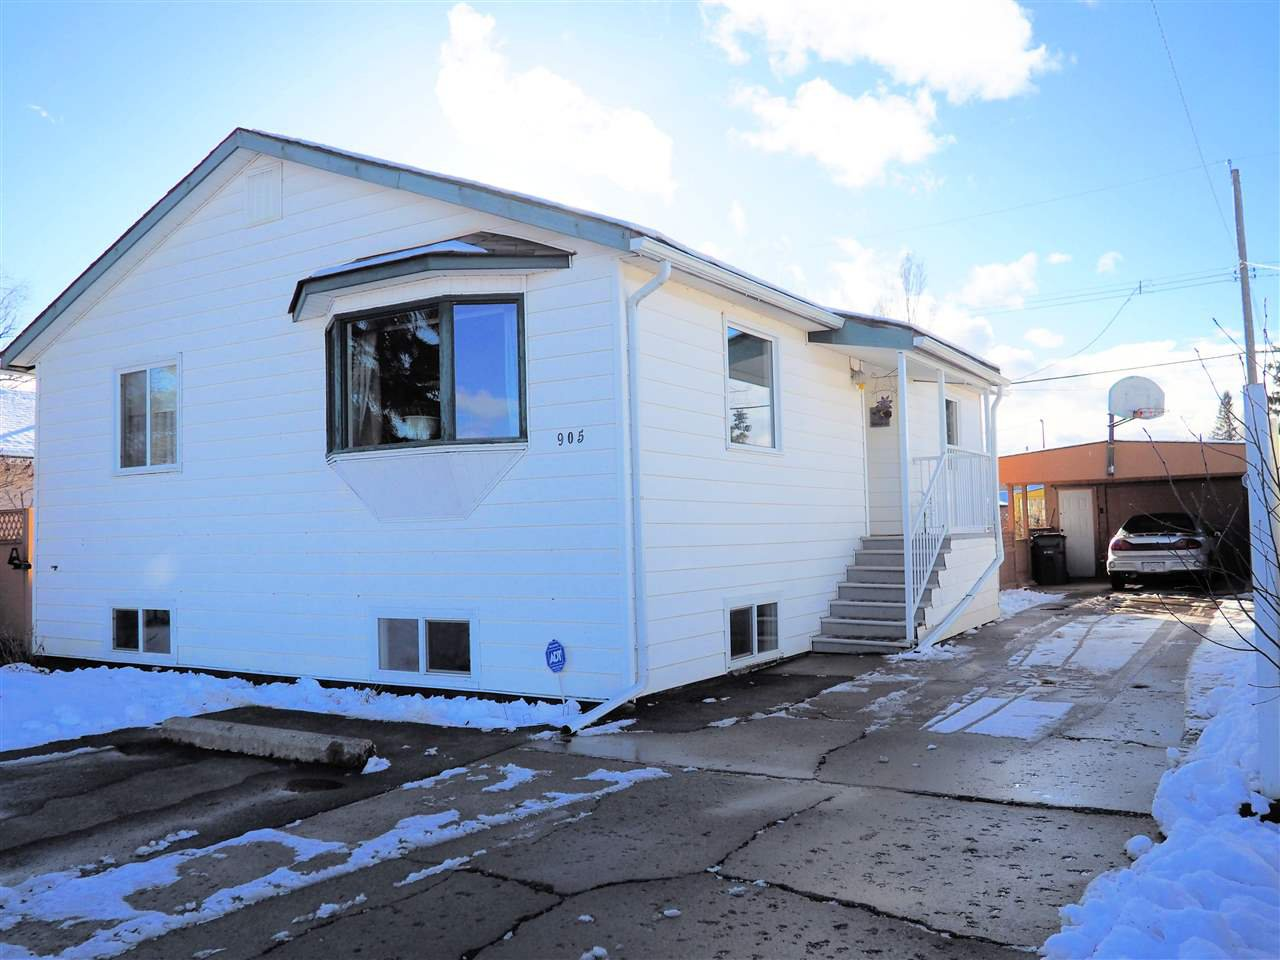 Main Photo: 905 HARPER Street in Prince George: Central House for sale (PG City Central (Zone 72))  : MLS®# R2040972